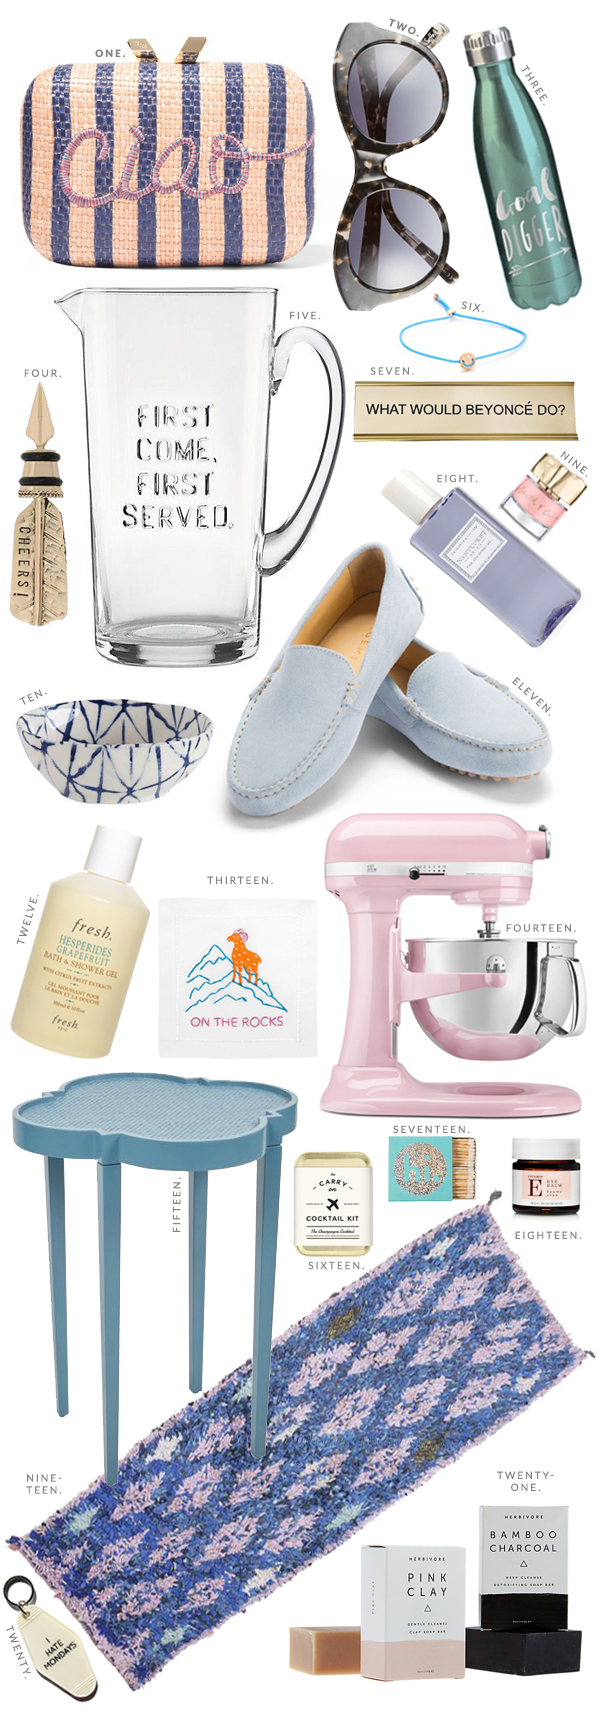 Rose quartz and serenity currently coveting product picks